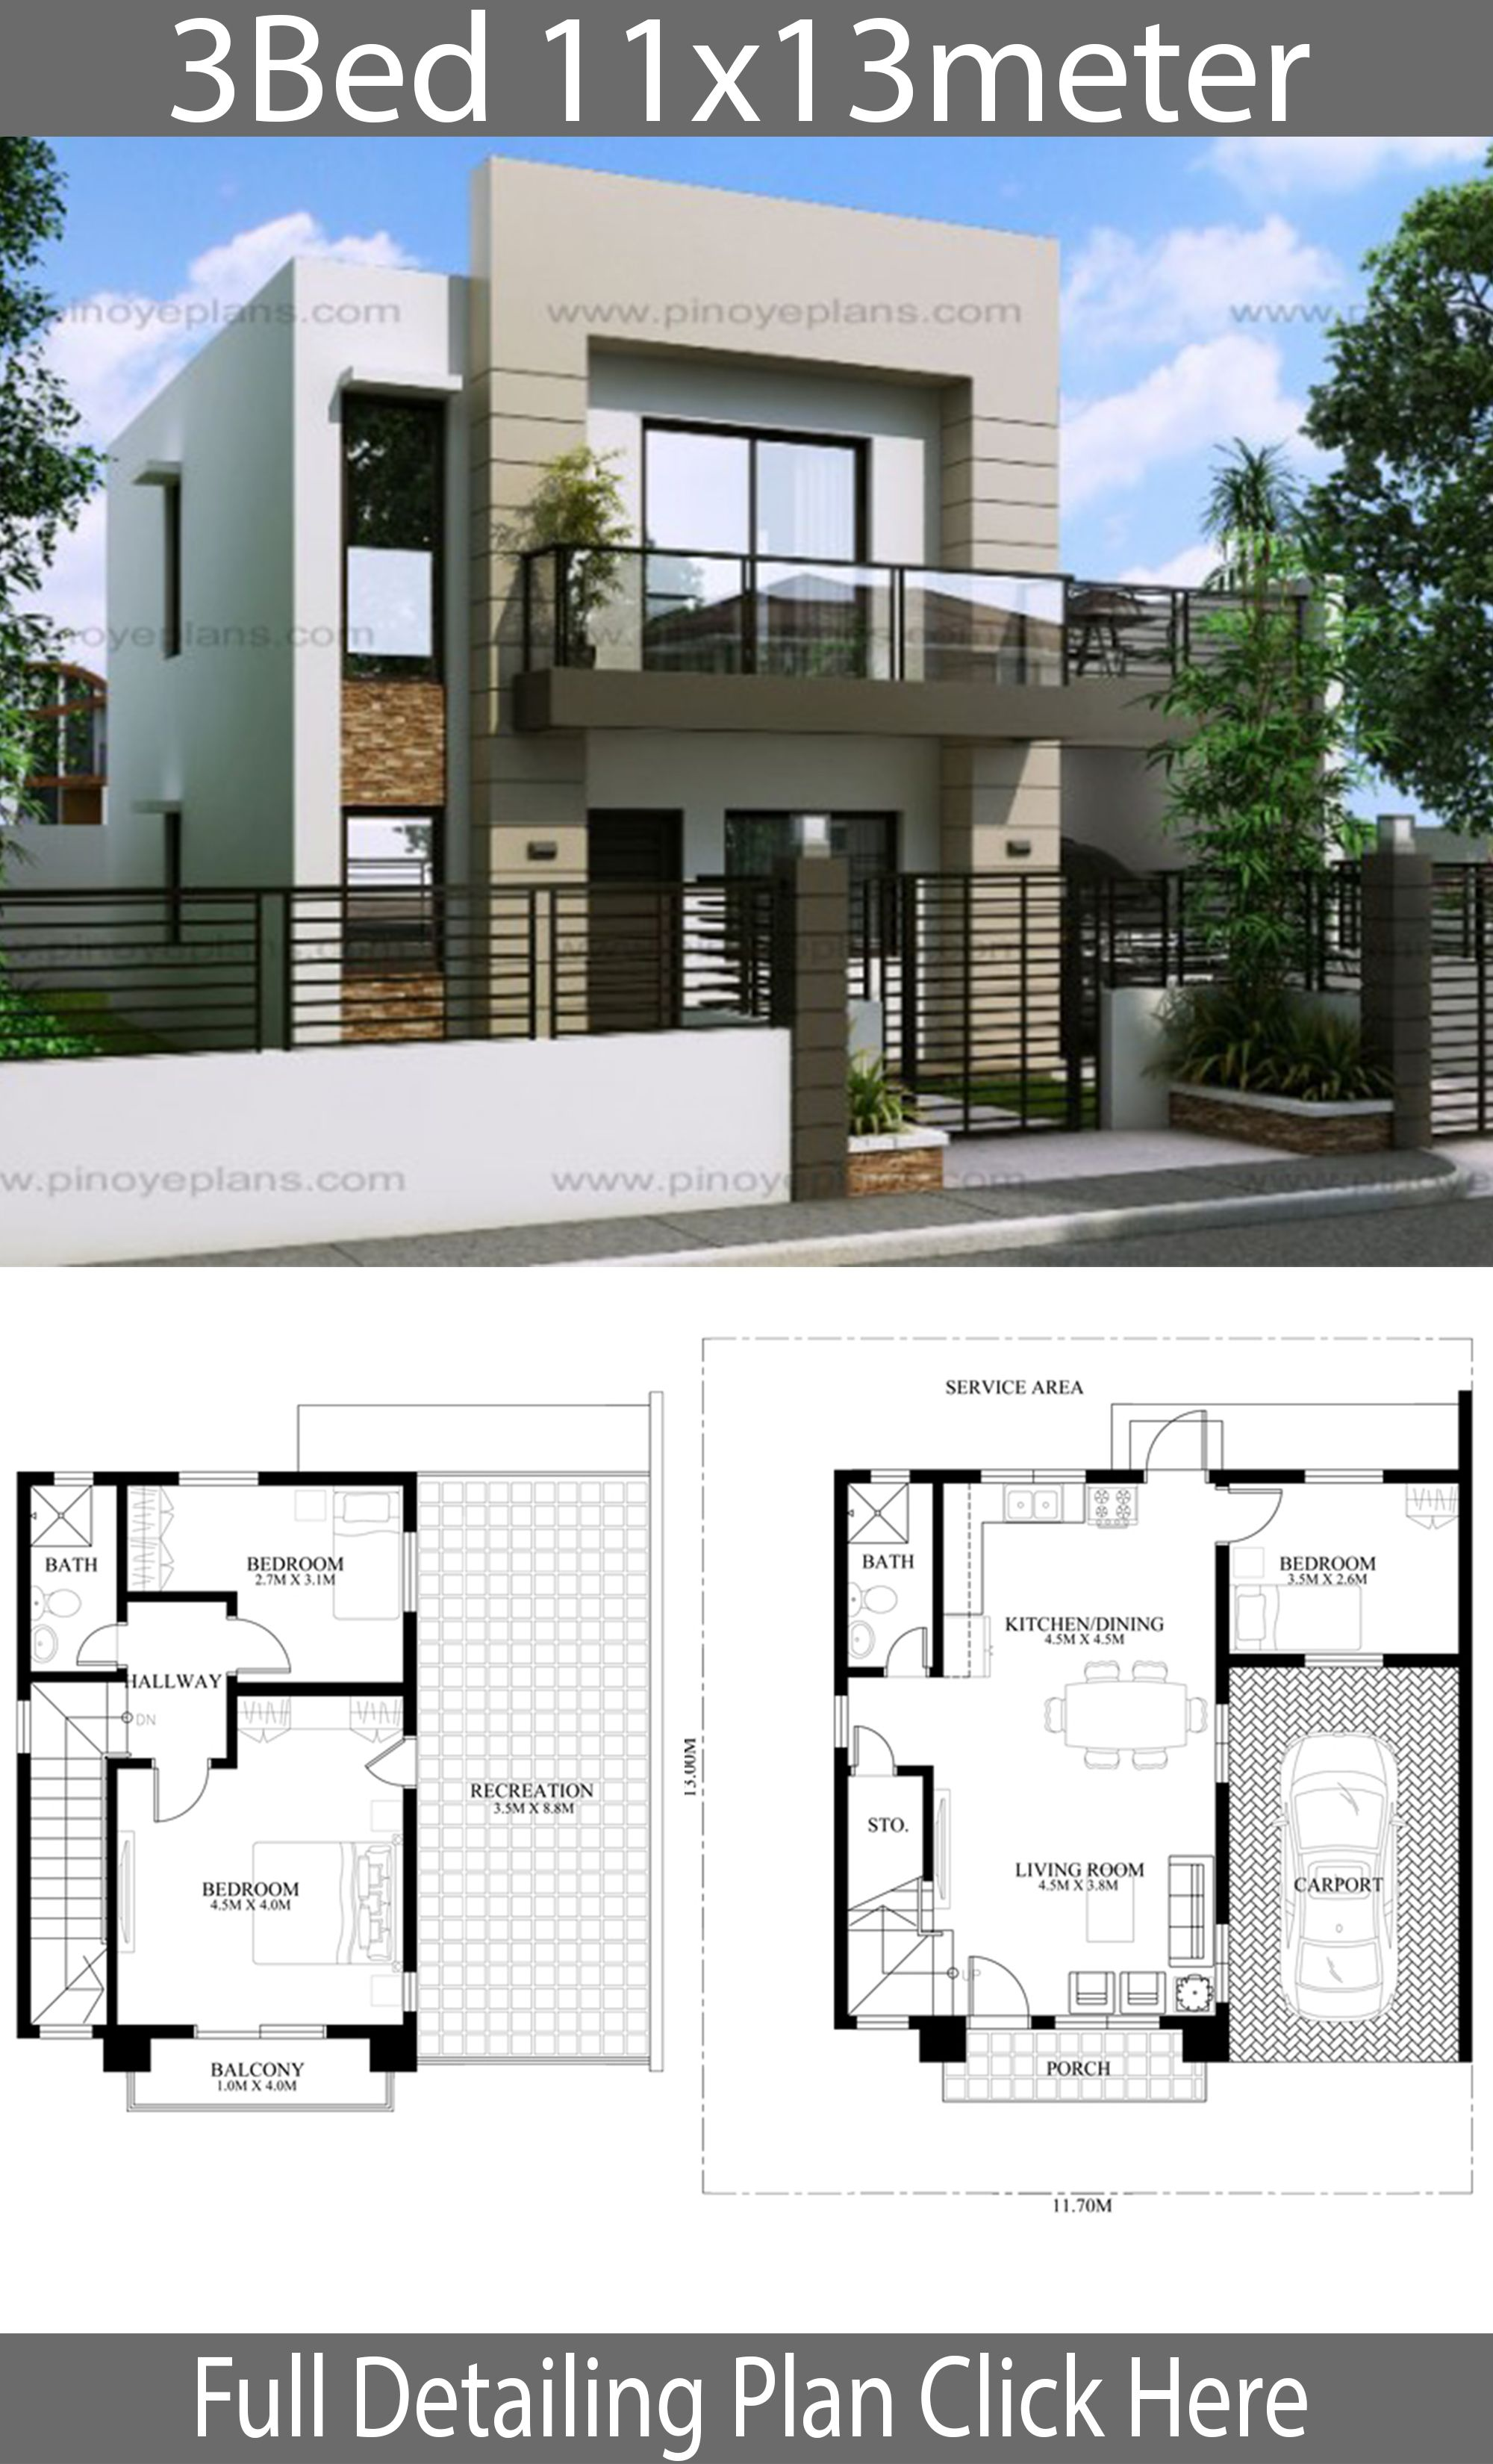 House Design 11x13m With 3 Bedrooms In 2020 Philippines House